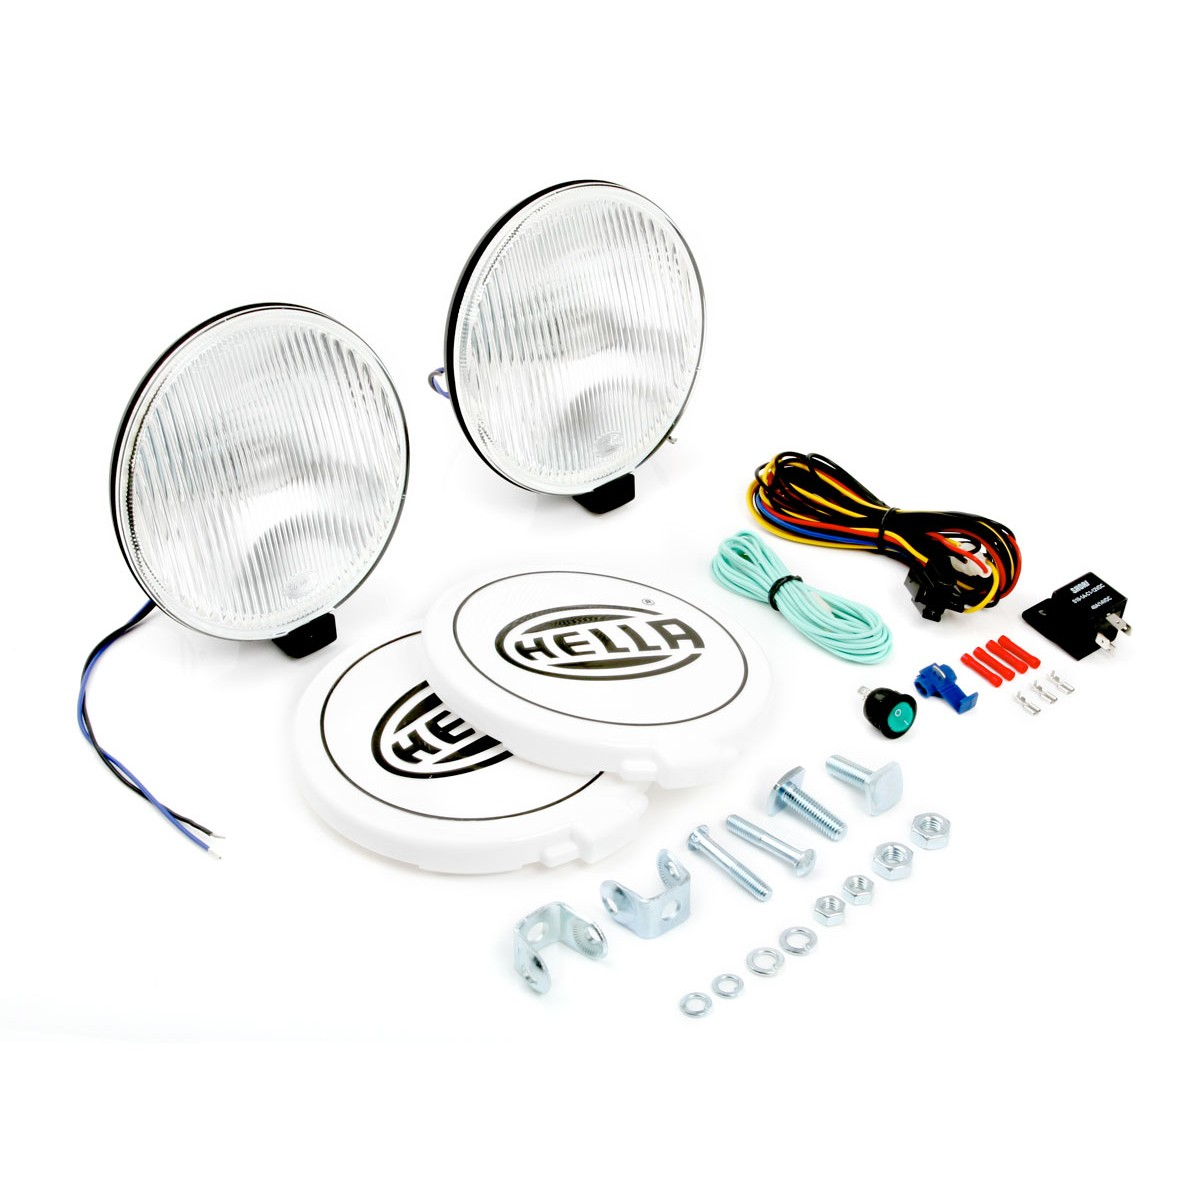 hight resolution of  spot hella 500 wiring hella 500 series light kits